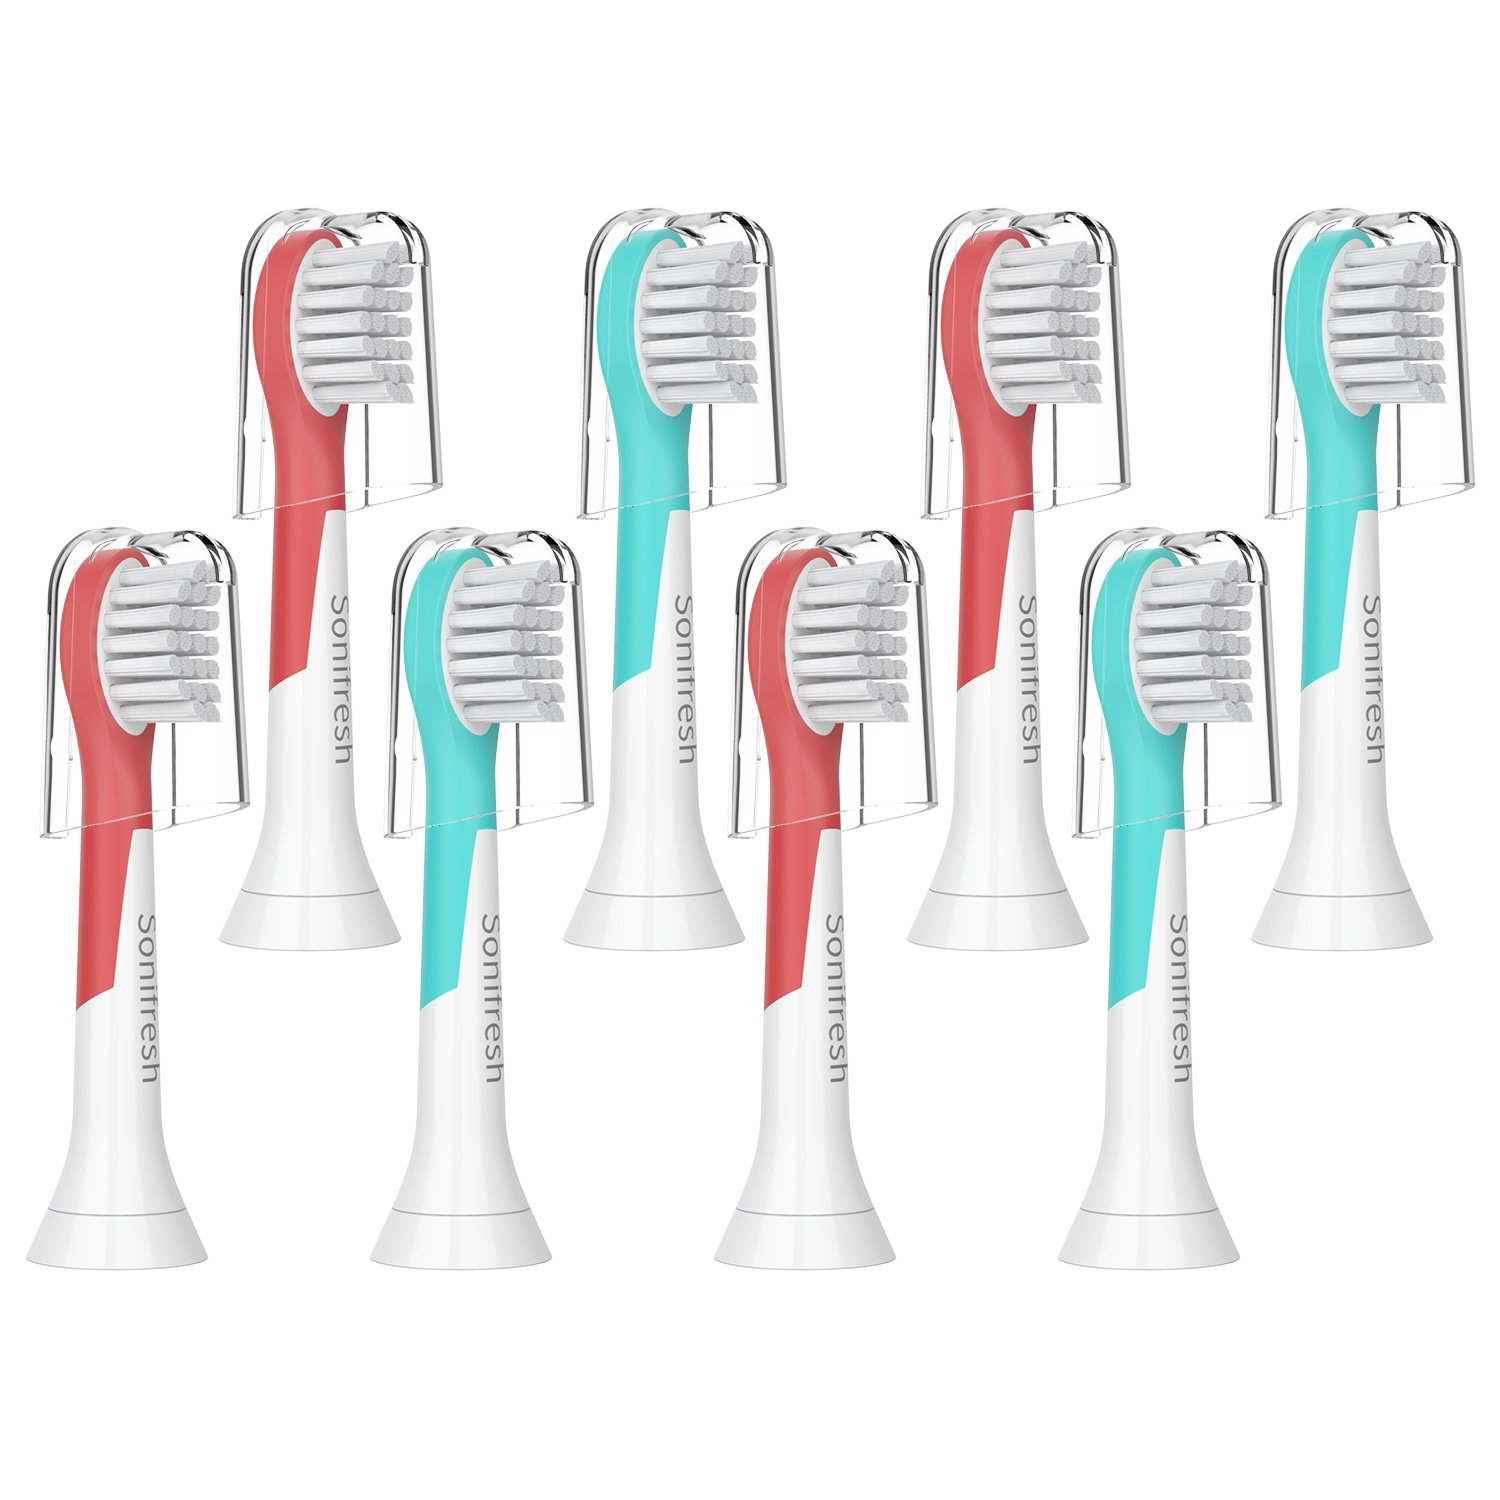 Kids Replacement Brush Heads, Compact Toothbrush Heads for Kids 3-7 Years Old,Compatible with Philips Sonicare Kids HX6032/94, HX6340, HX6321, HX6330,HX6331, HX6320, HX6034, 8 pack